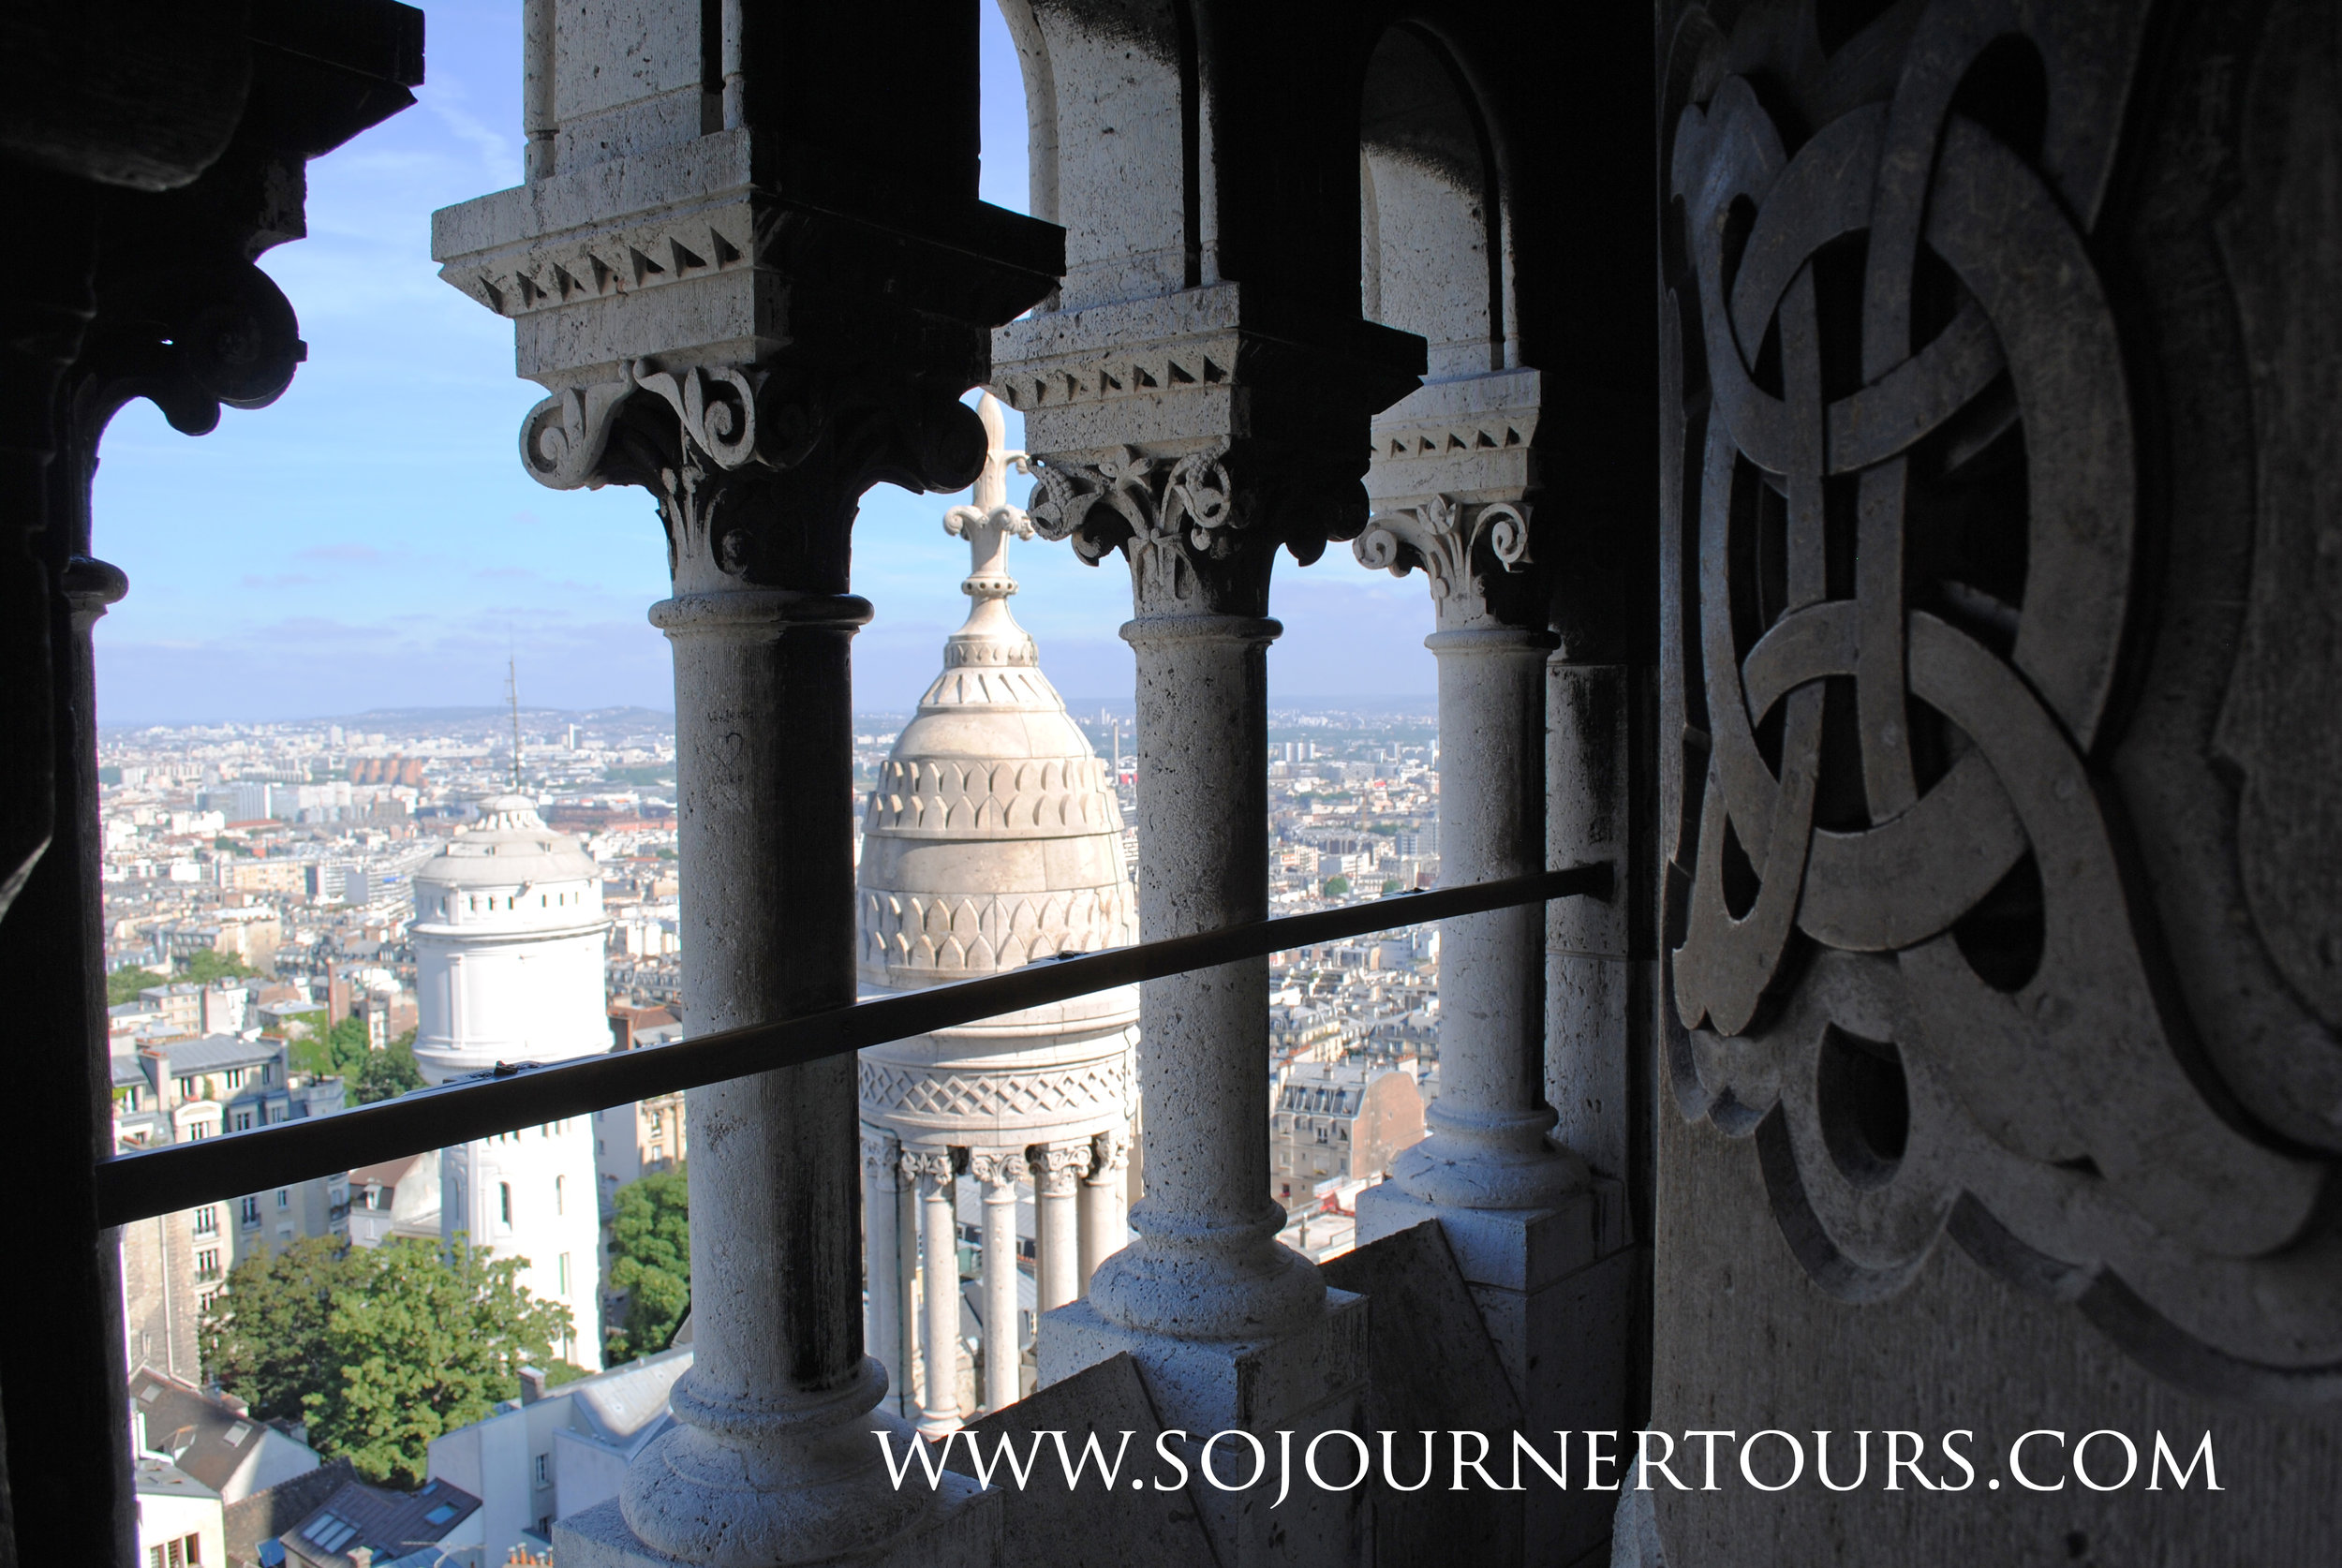 Visiting Paris with Sojourner Tours: Sacre Coeur, Montmartre